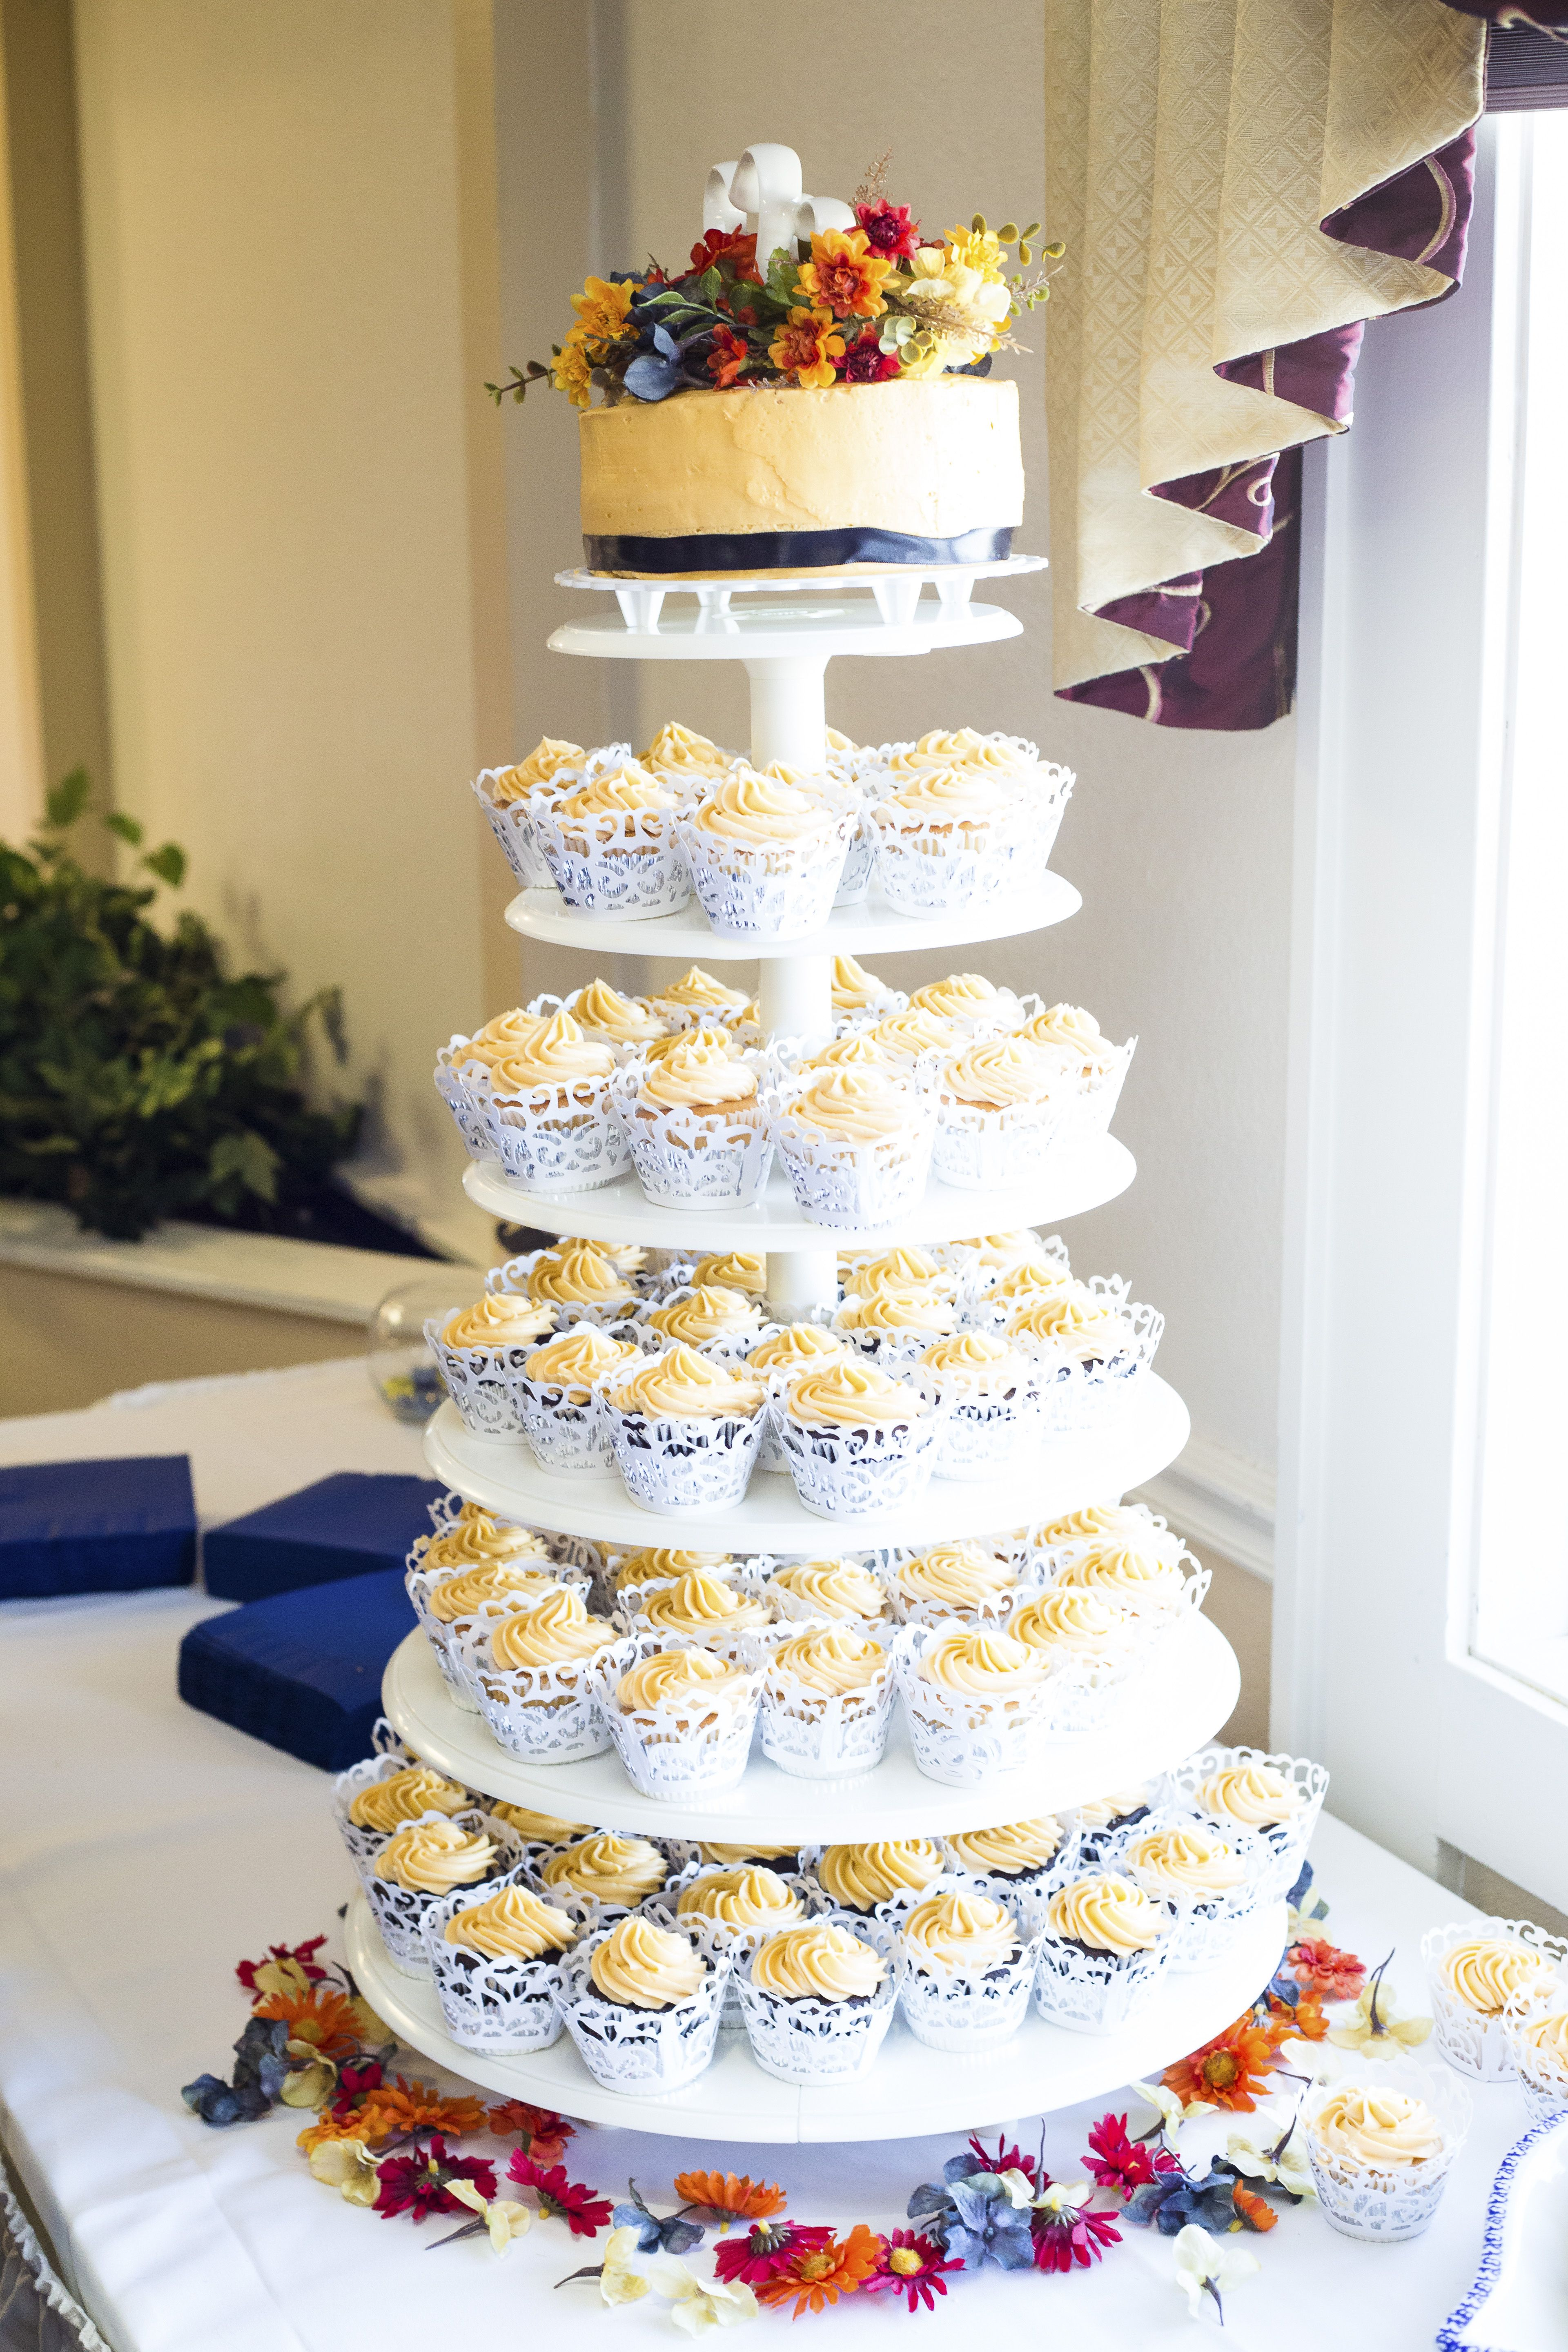 Naked cake and cupcakes with fruit topper, placed on a